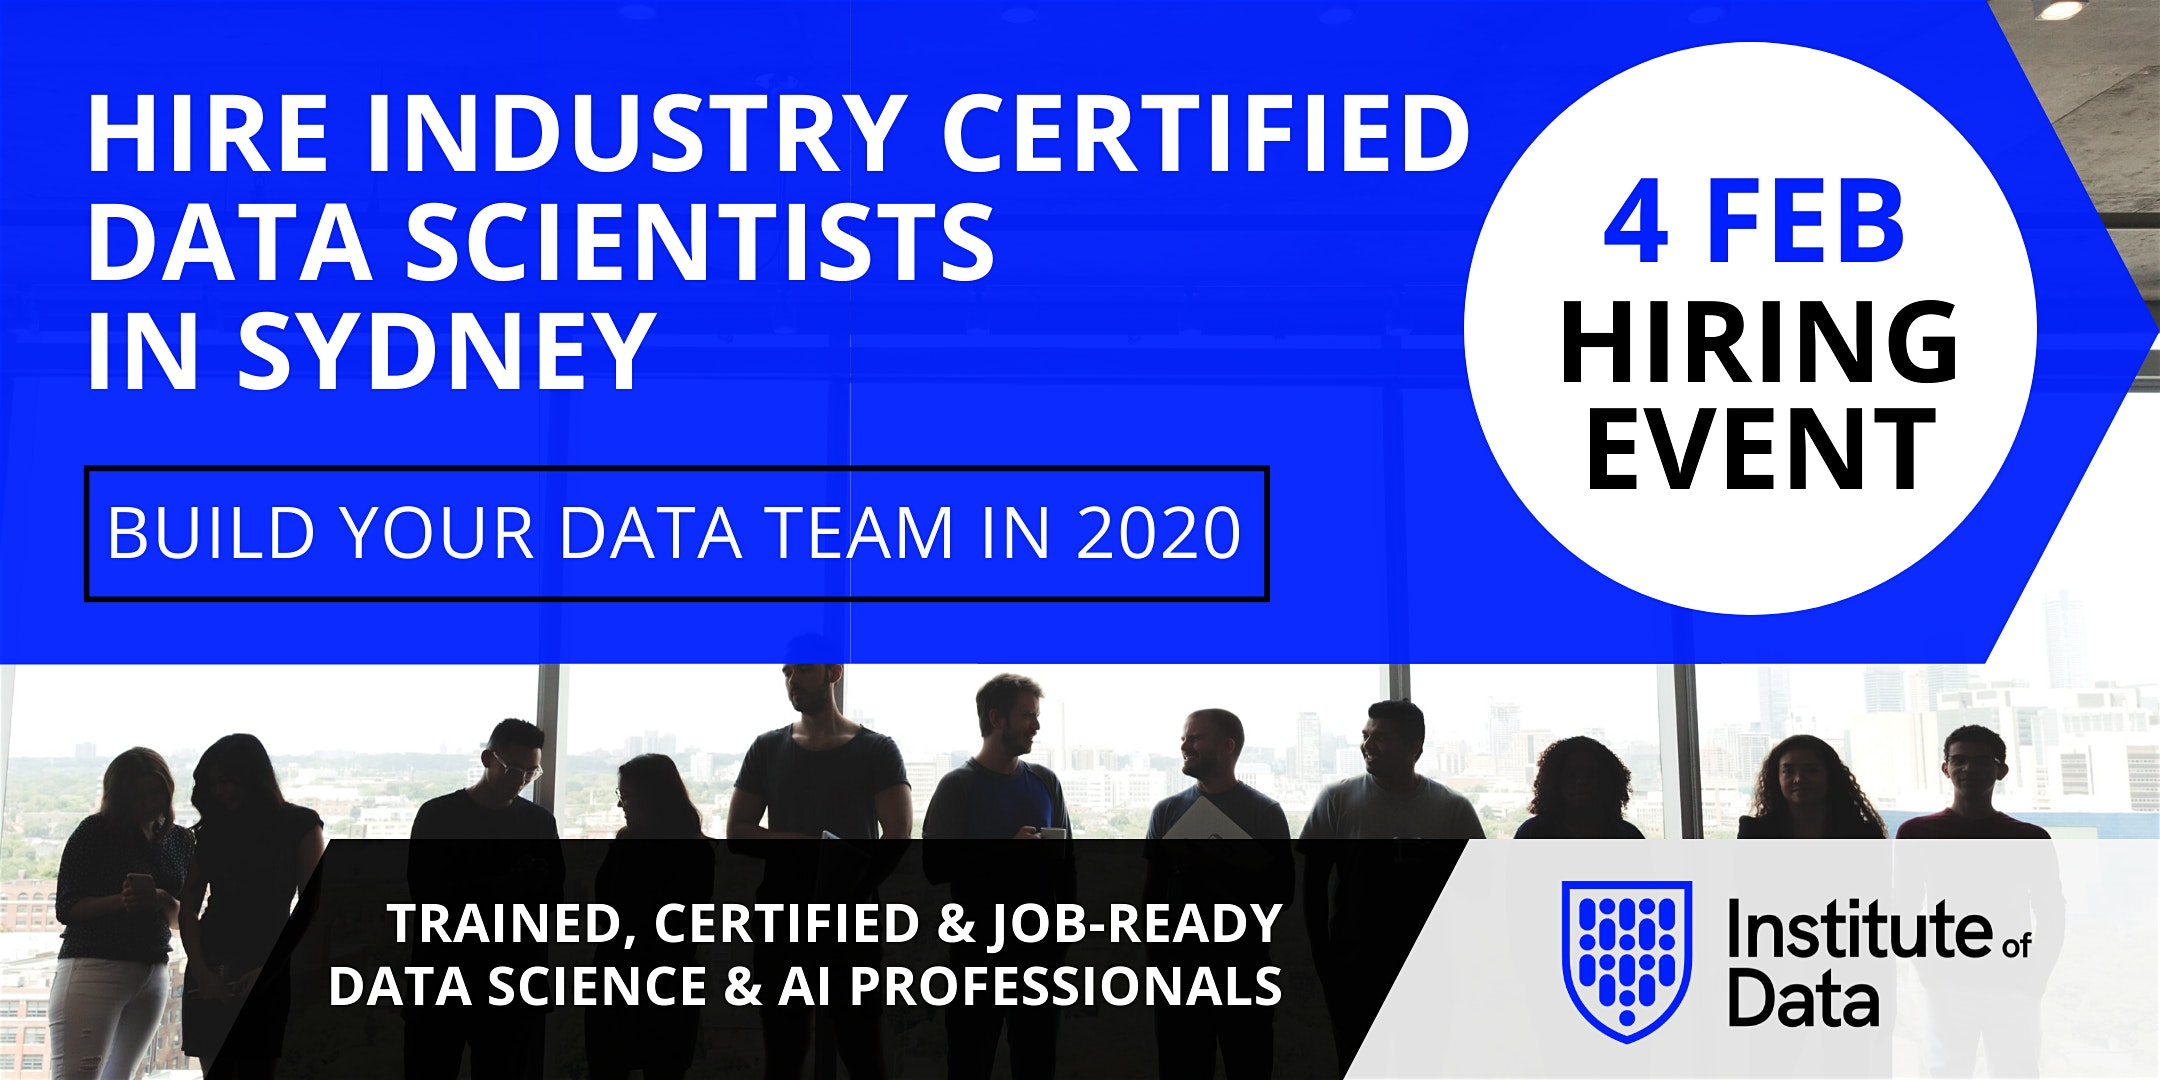 Hire Industry Certified Data Scientists - Sydney